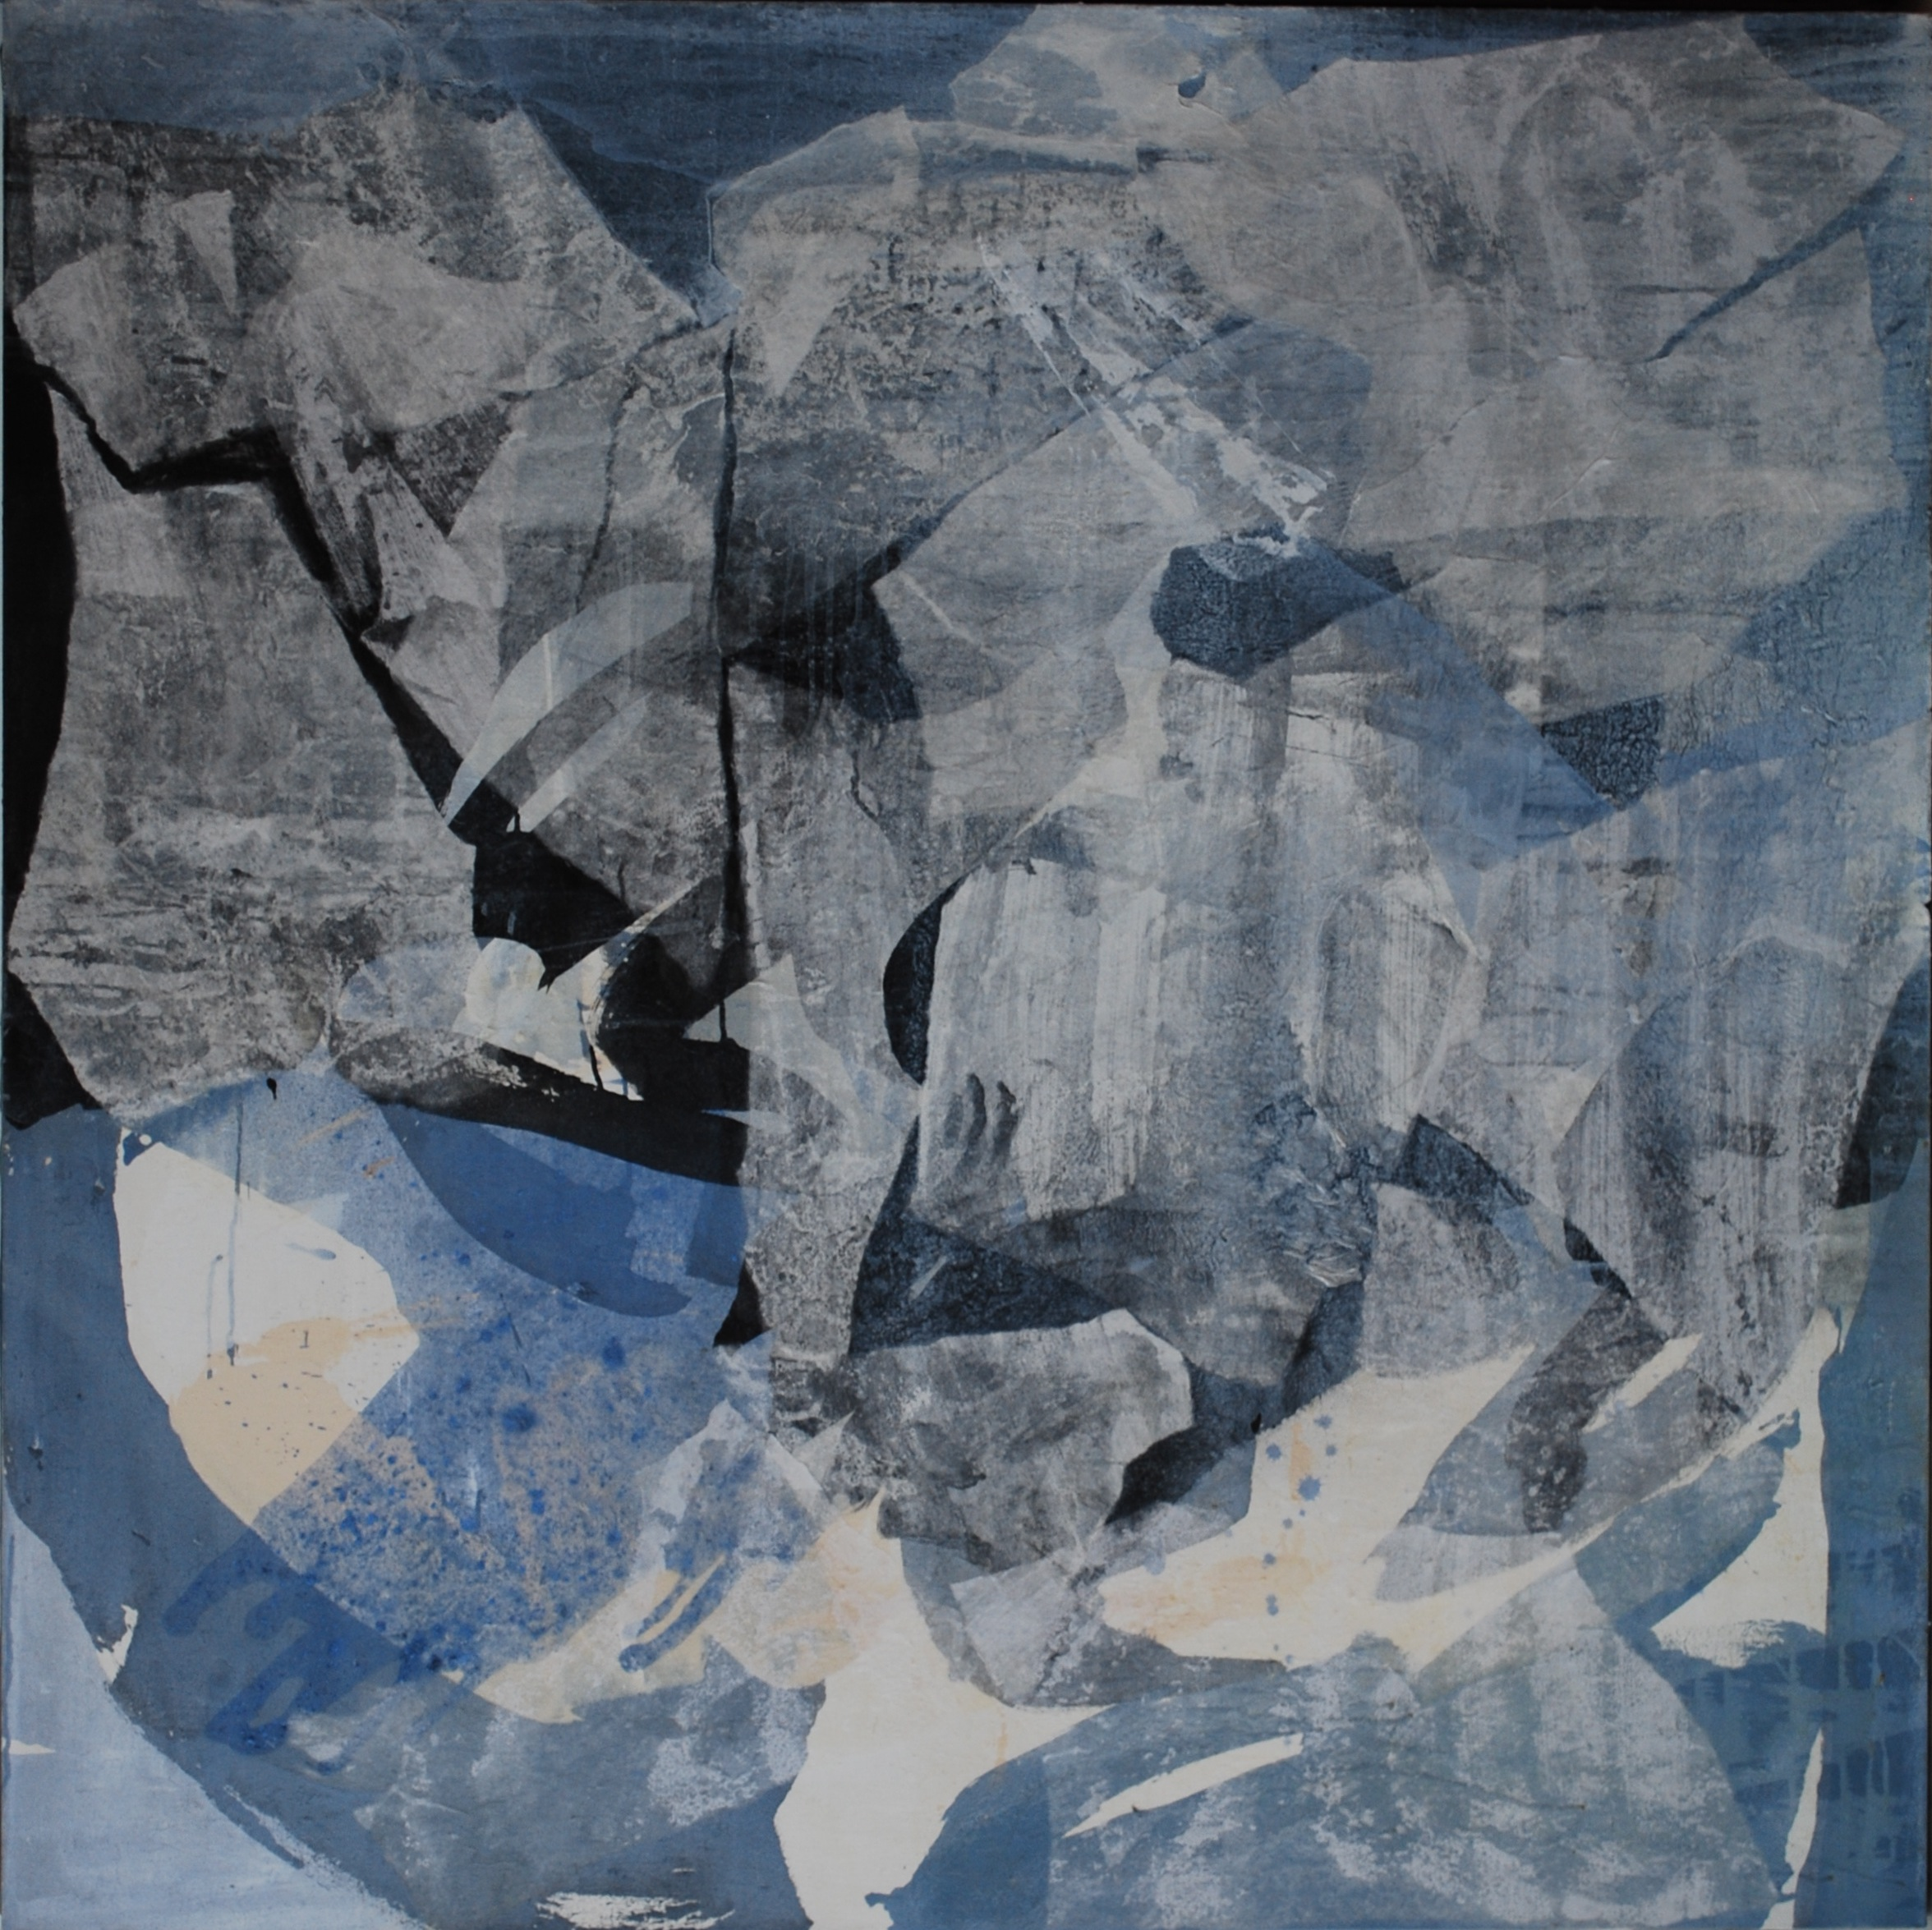 SoHyun Bae, Wrapped Shards #5, 2002, rice-paper and pure pigment on canvas, 60 x 60 inches